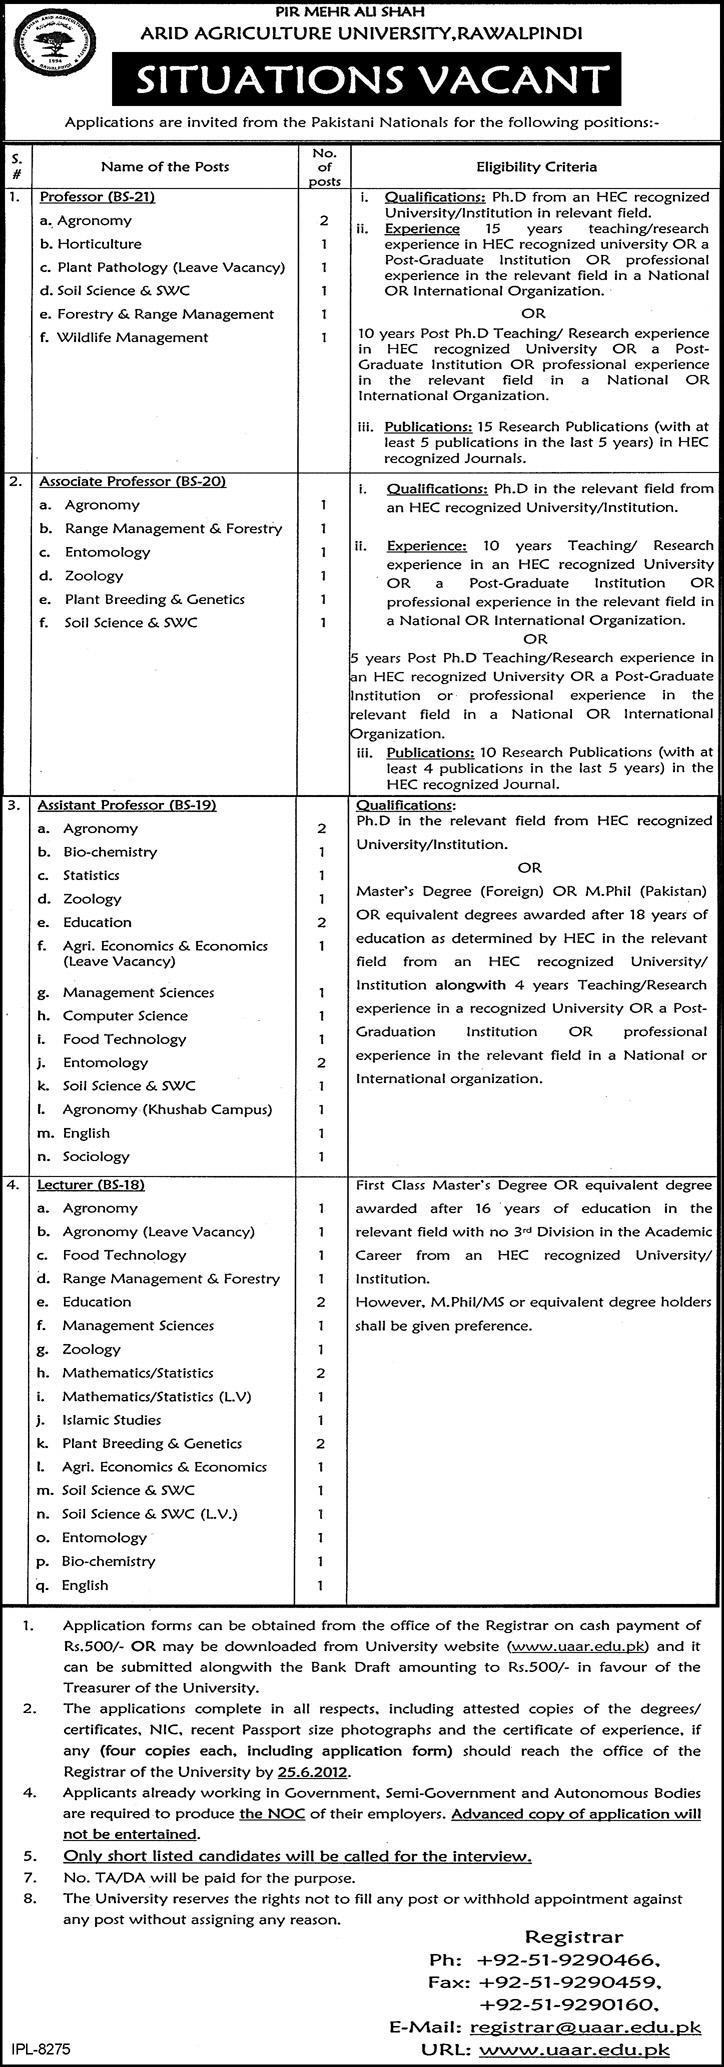 Jobs In Arid Agriculture University Rawalpindi 2012